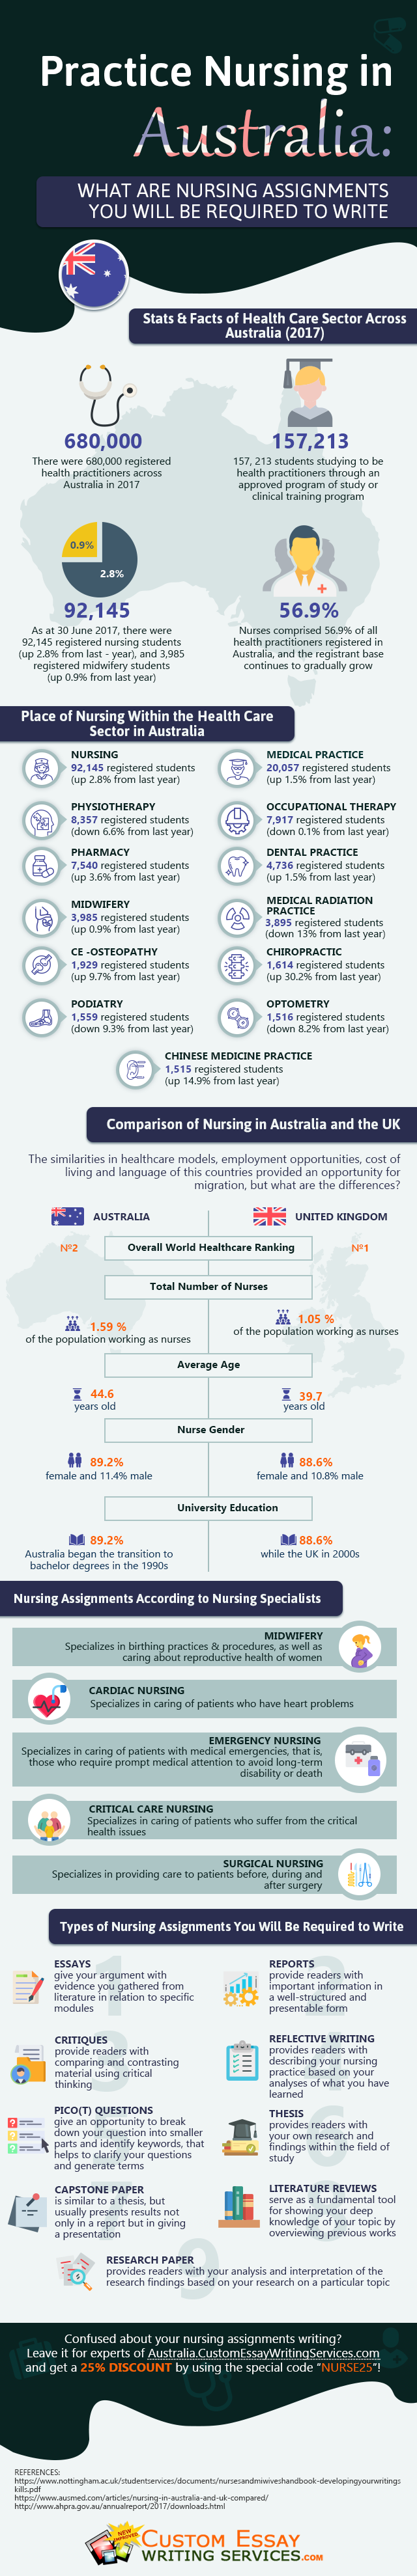 Practice Nursing in Australia: What Are Nursing Assignments You Will Be Required to Write